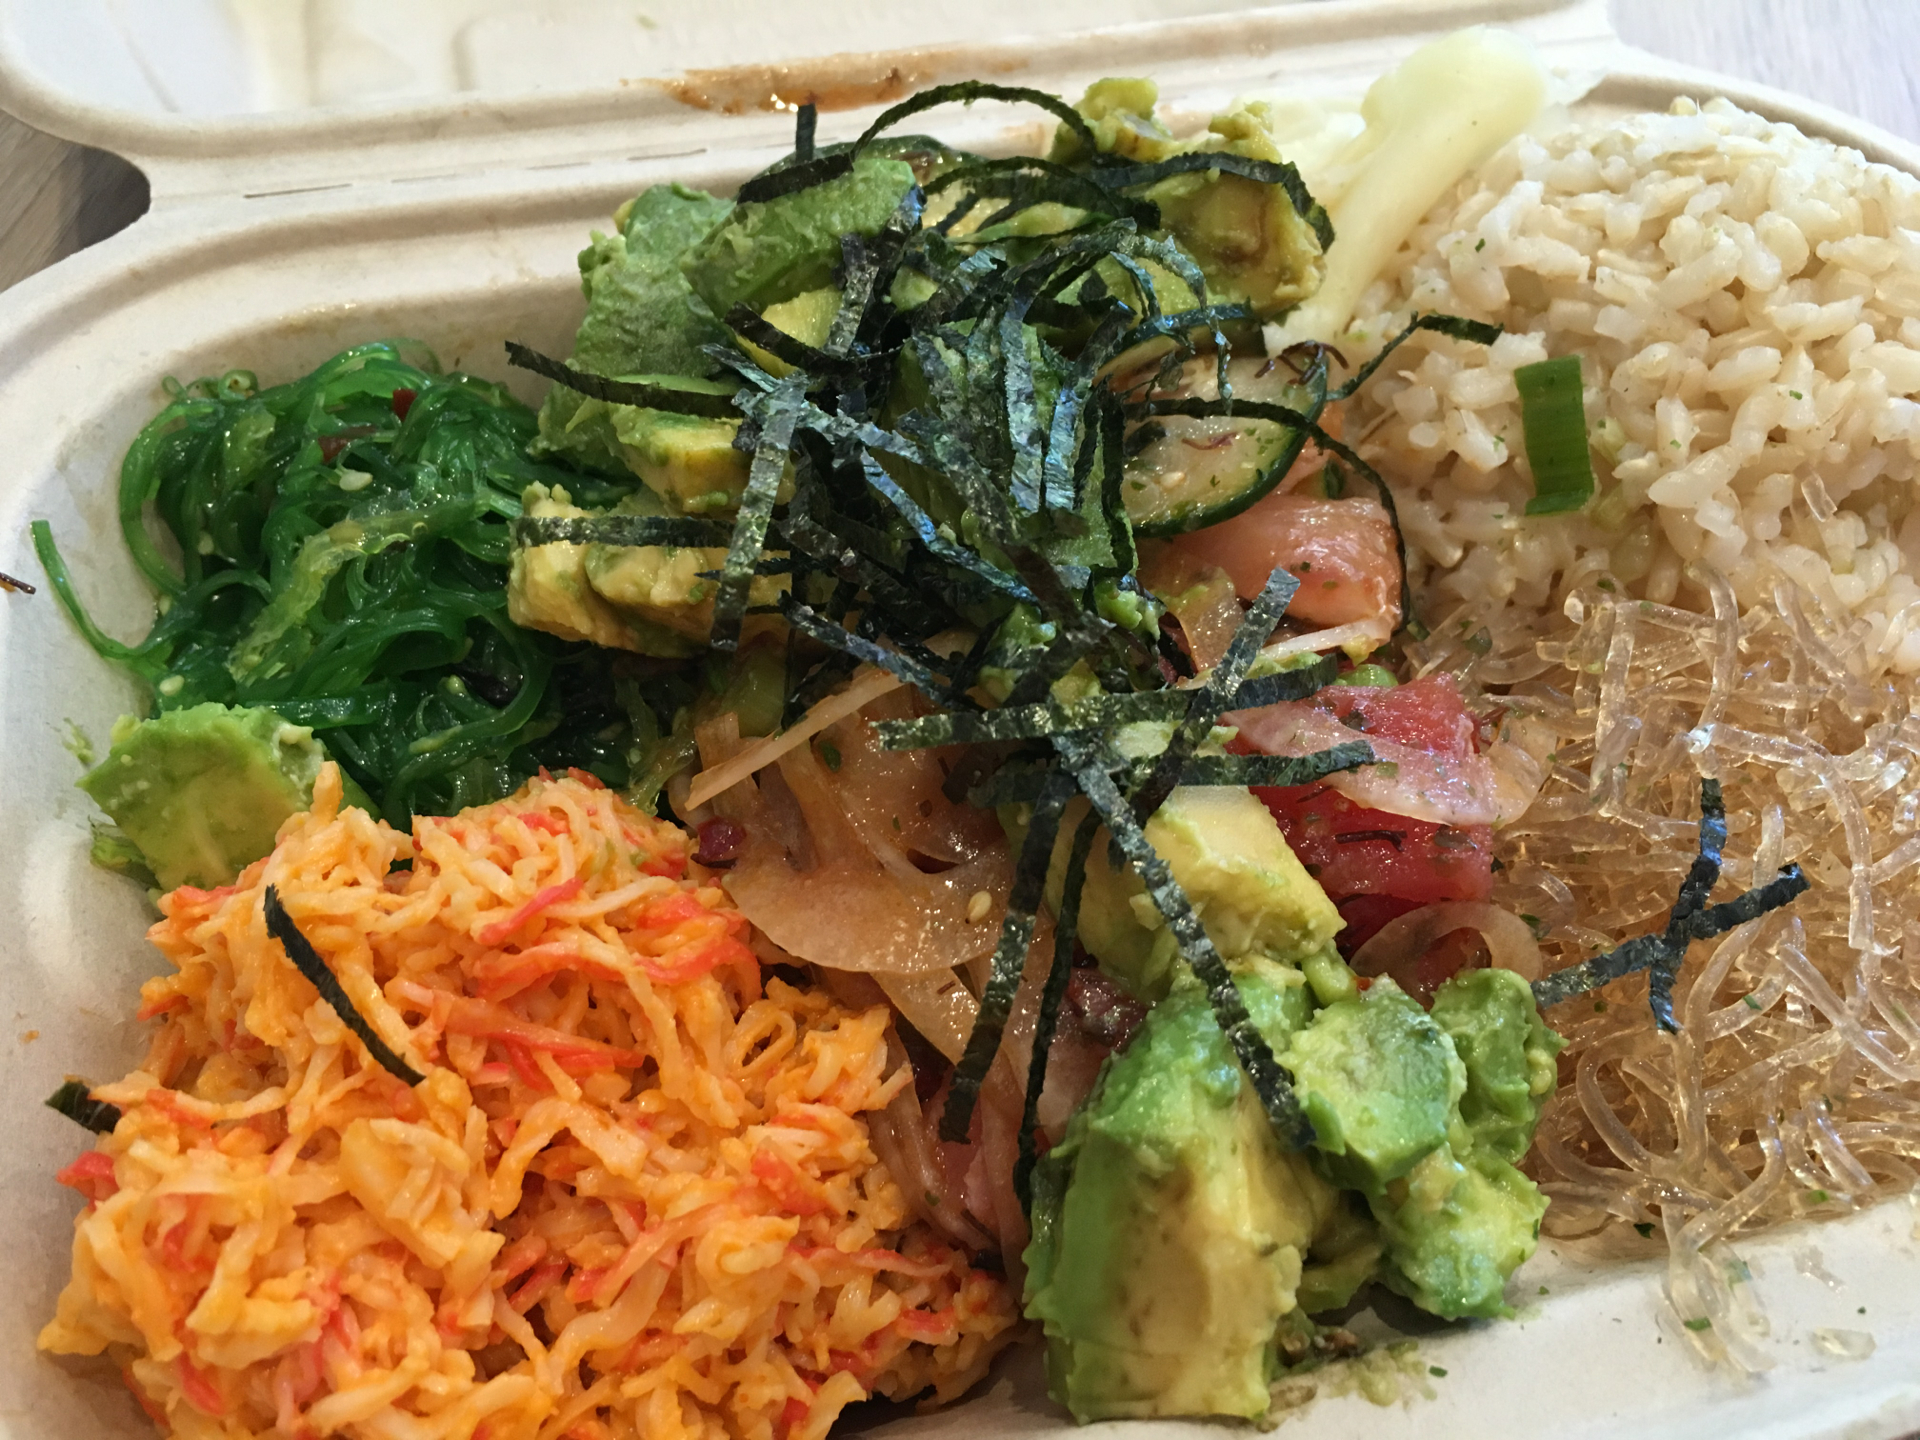 Ahi tuna over kelp noodles and brown rice with spicy crab salad and seaweed salad.